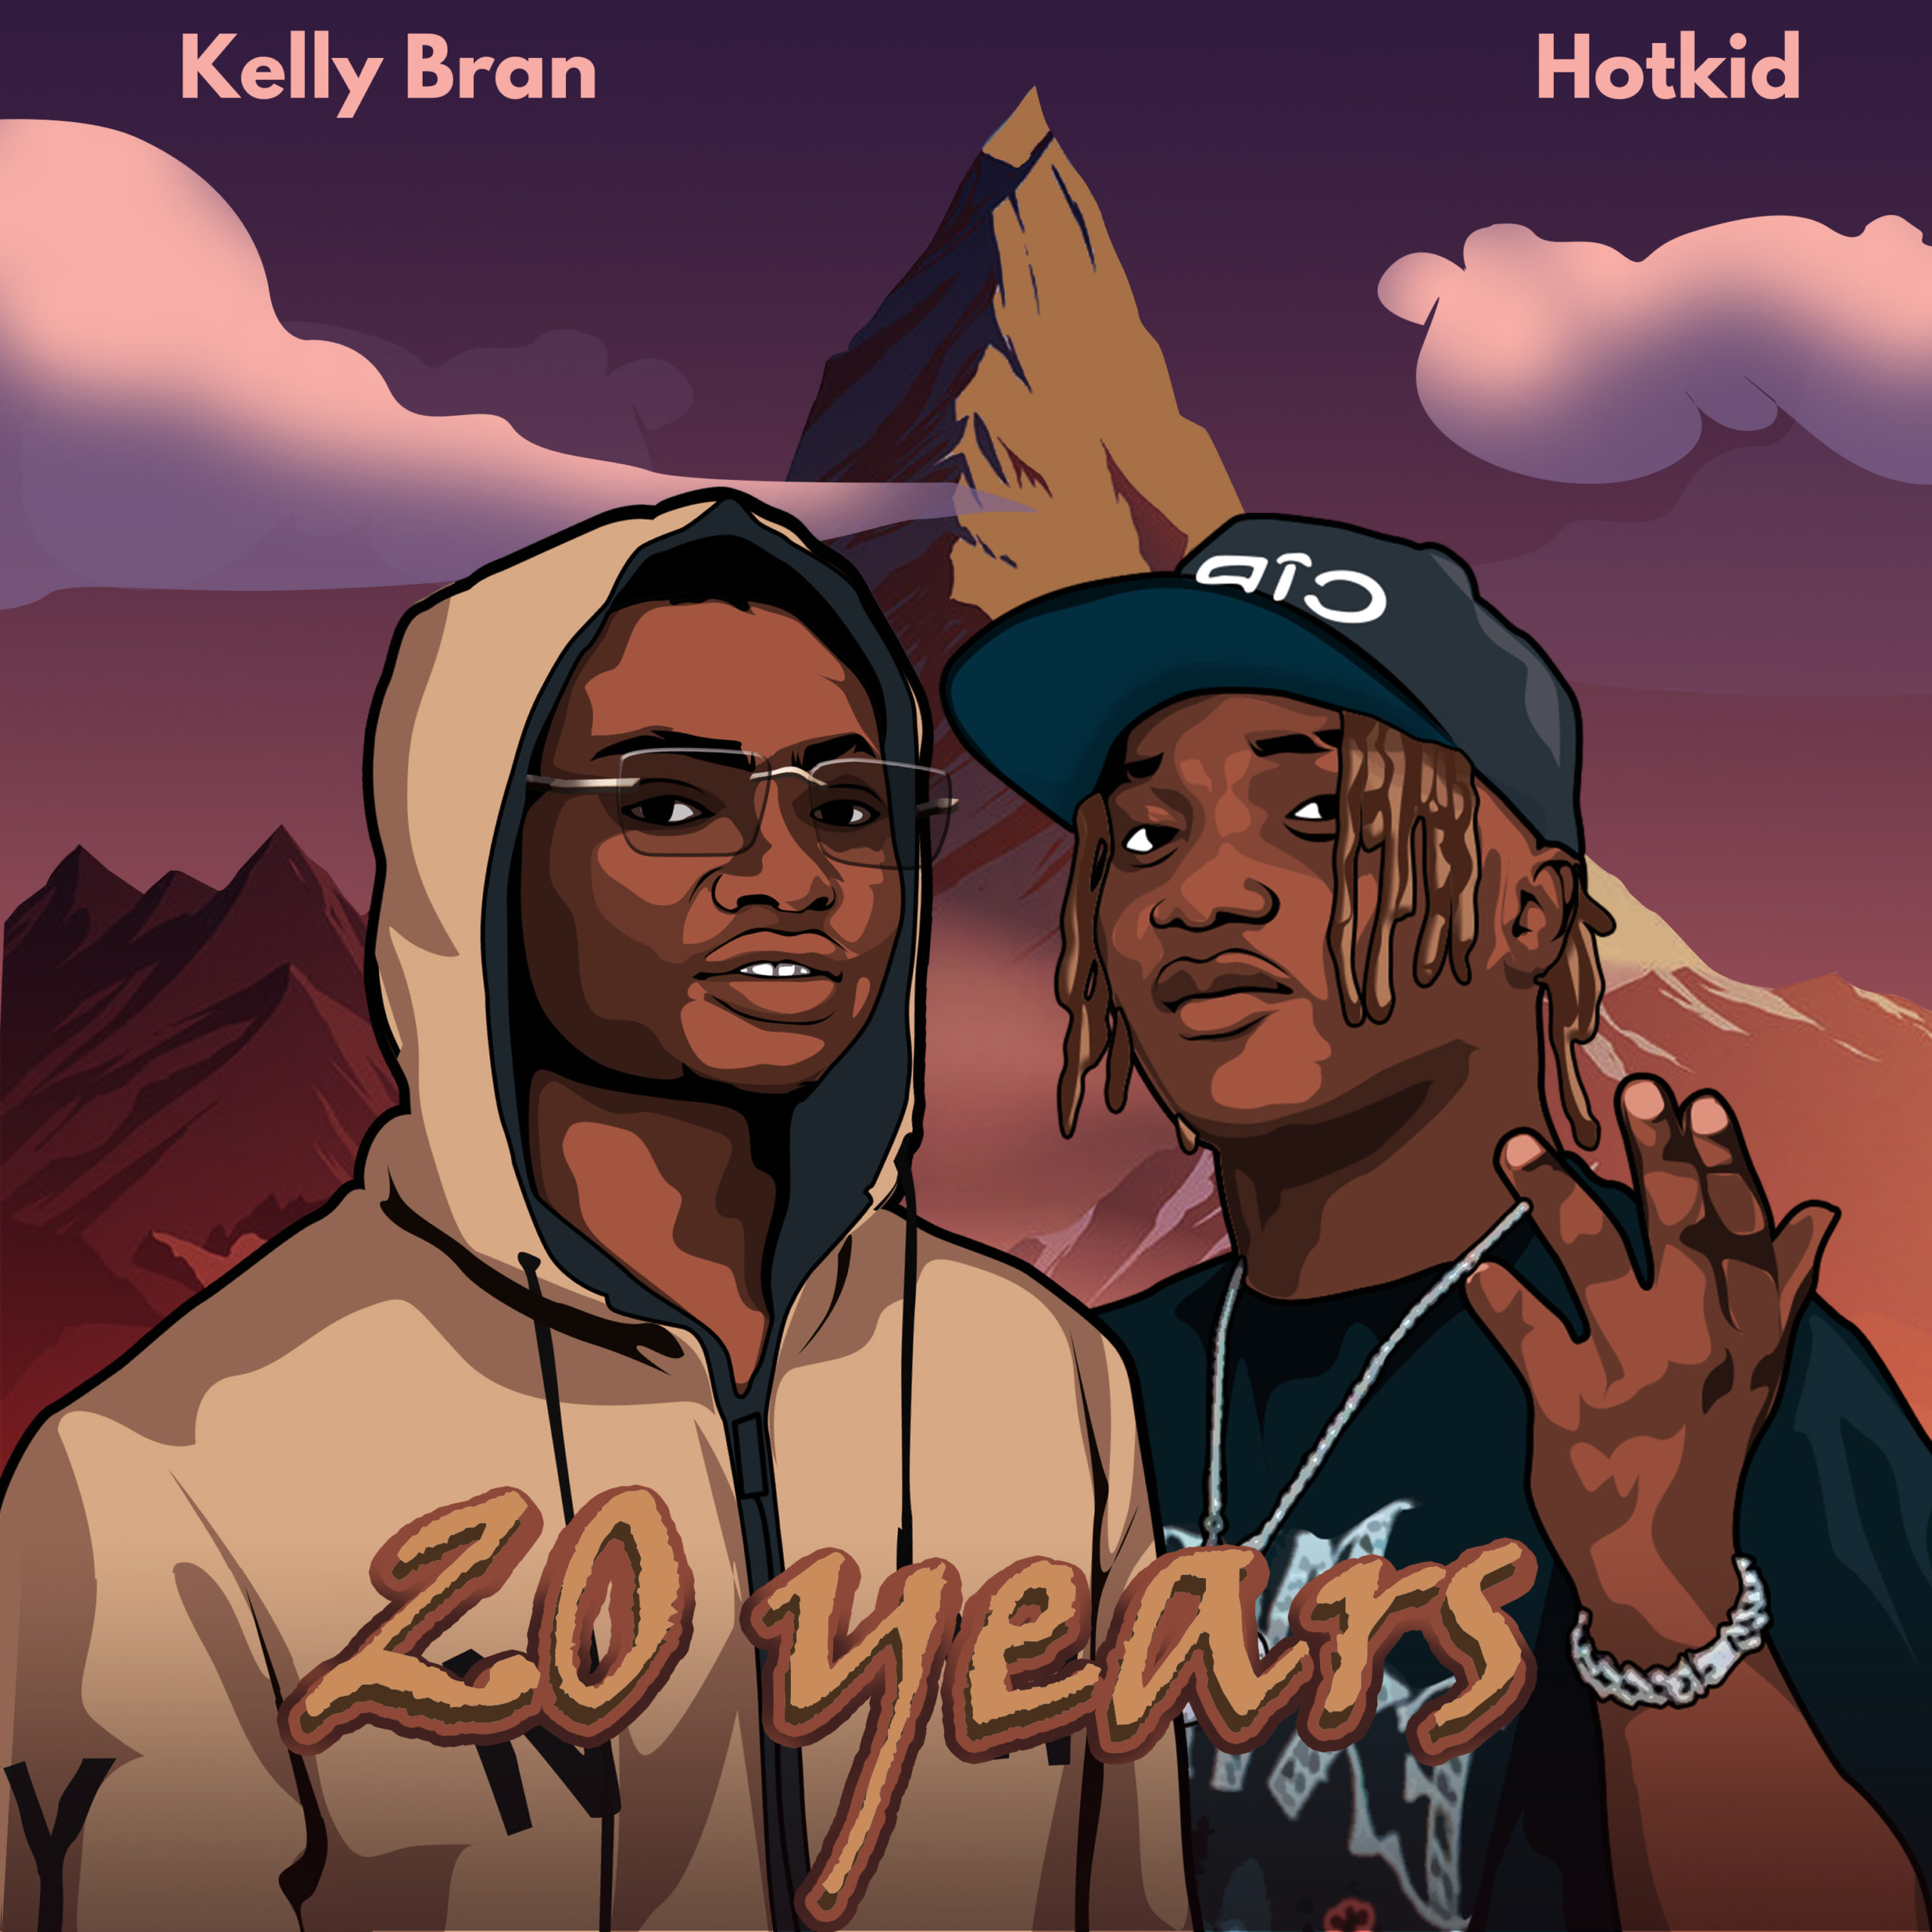 Kelly Bran Ft. Hotkid  20 Years mp3 download